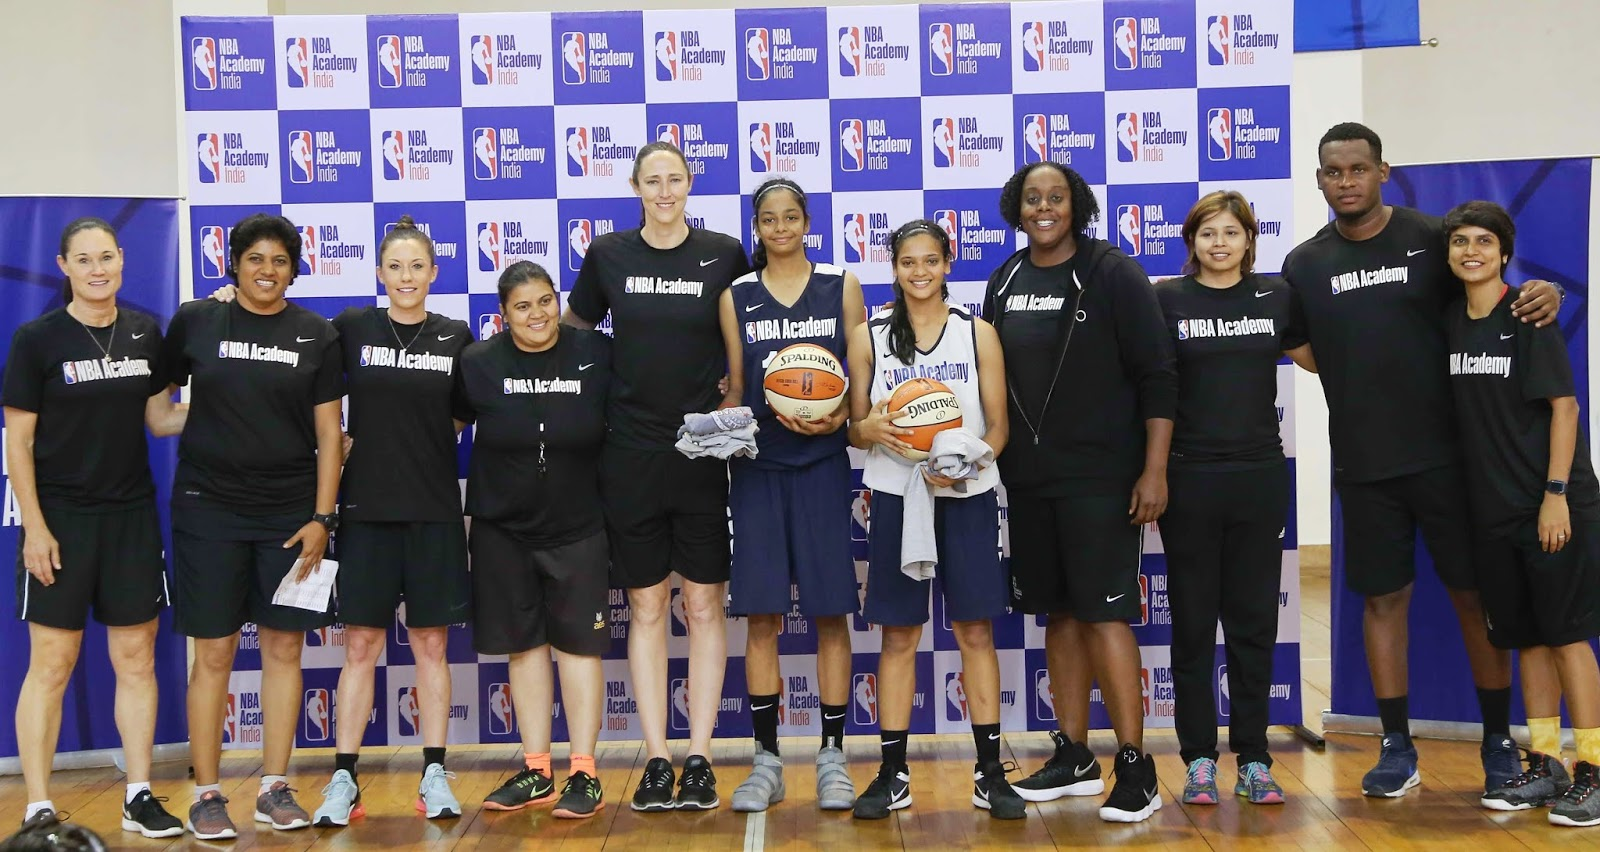 93820b47d09c The first-ever NBA Academy Women s camp concluded today with a championship  game played between Team Liberty and Team Sparks at The NBA Academy India  in ...